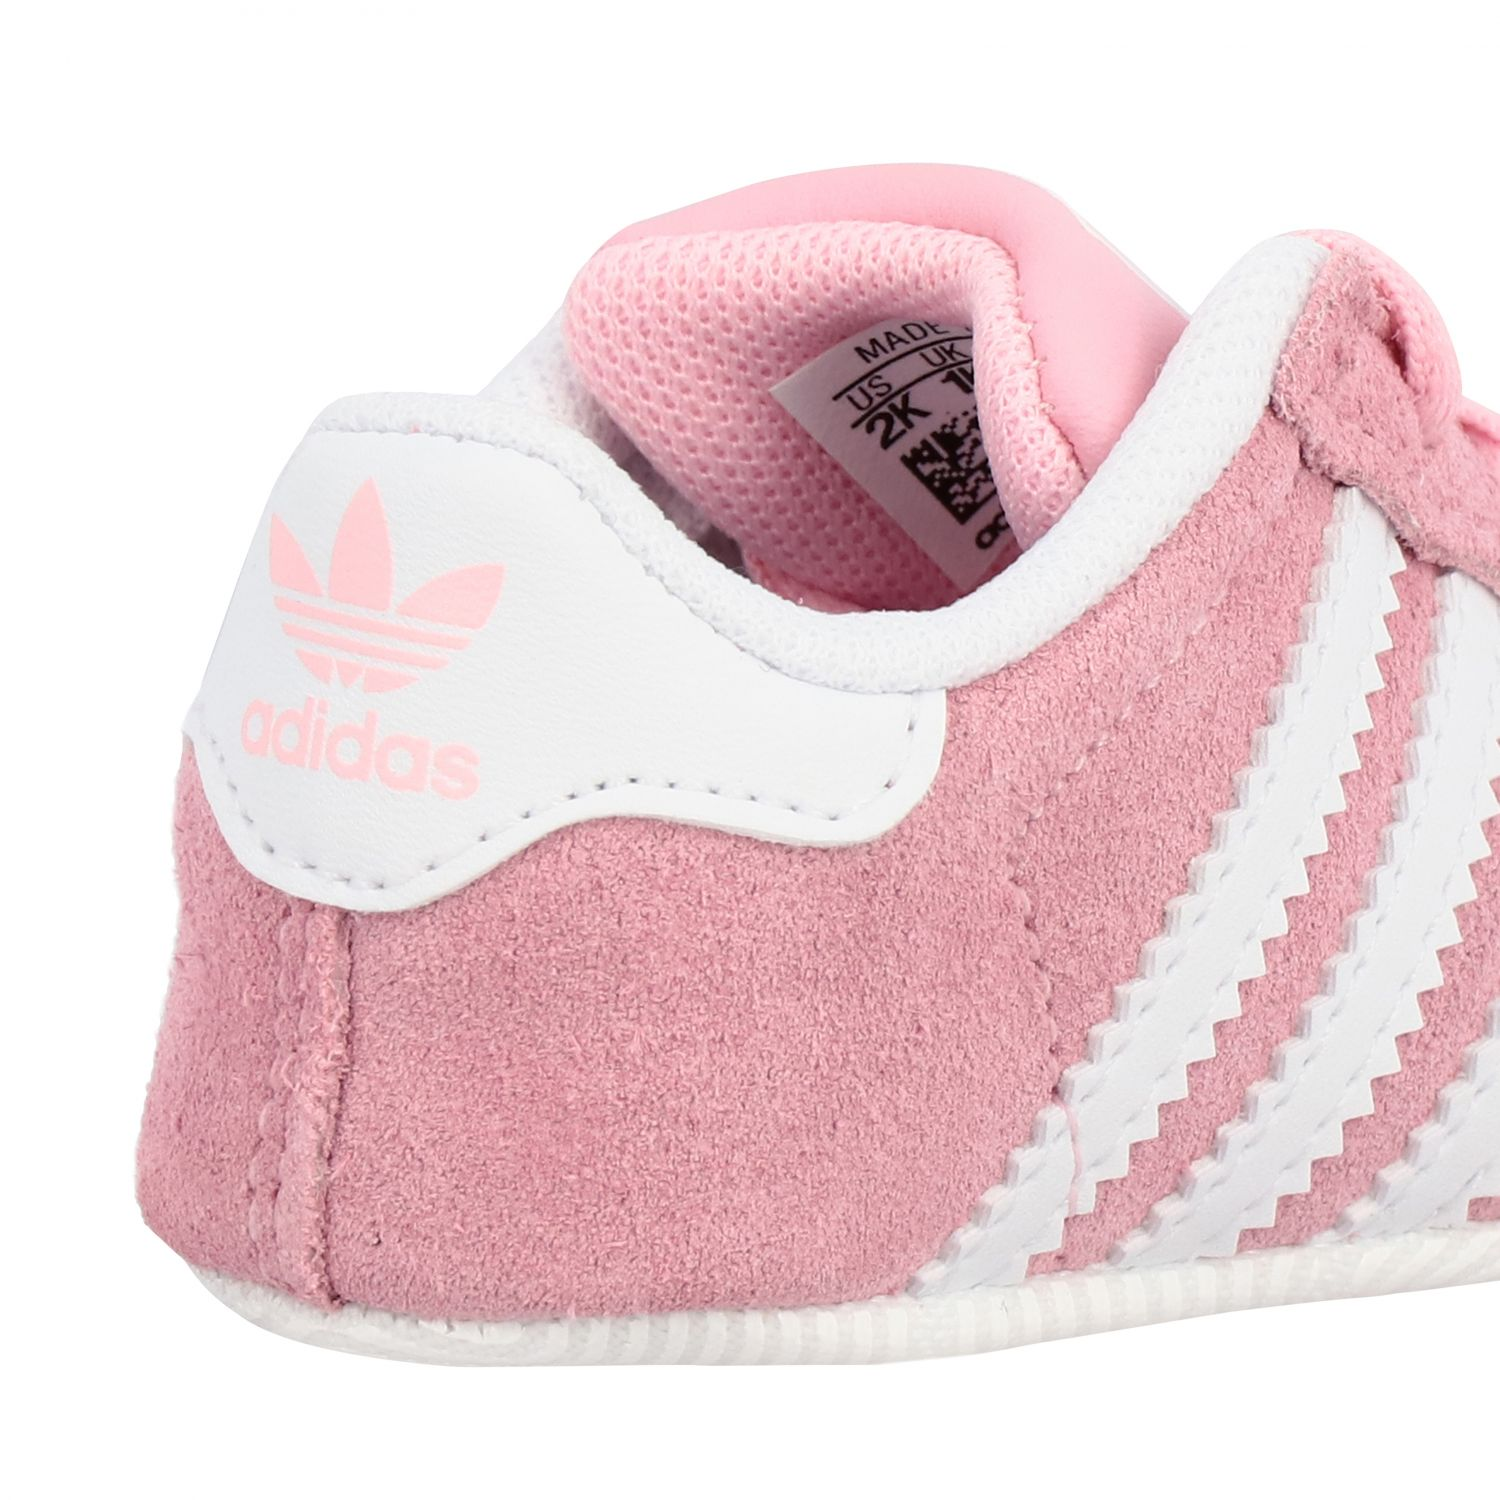 Baskets Gazelle Crib Adidas Originals en daim et cuir rose 5